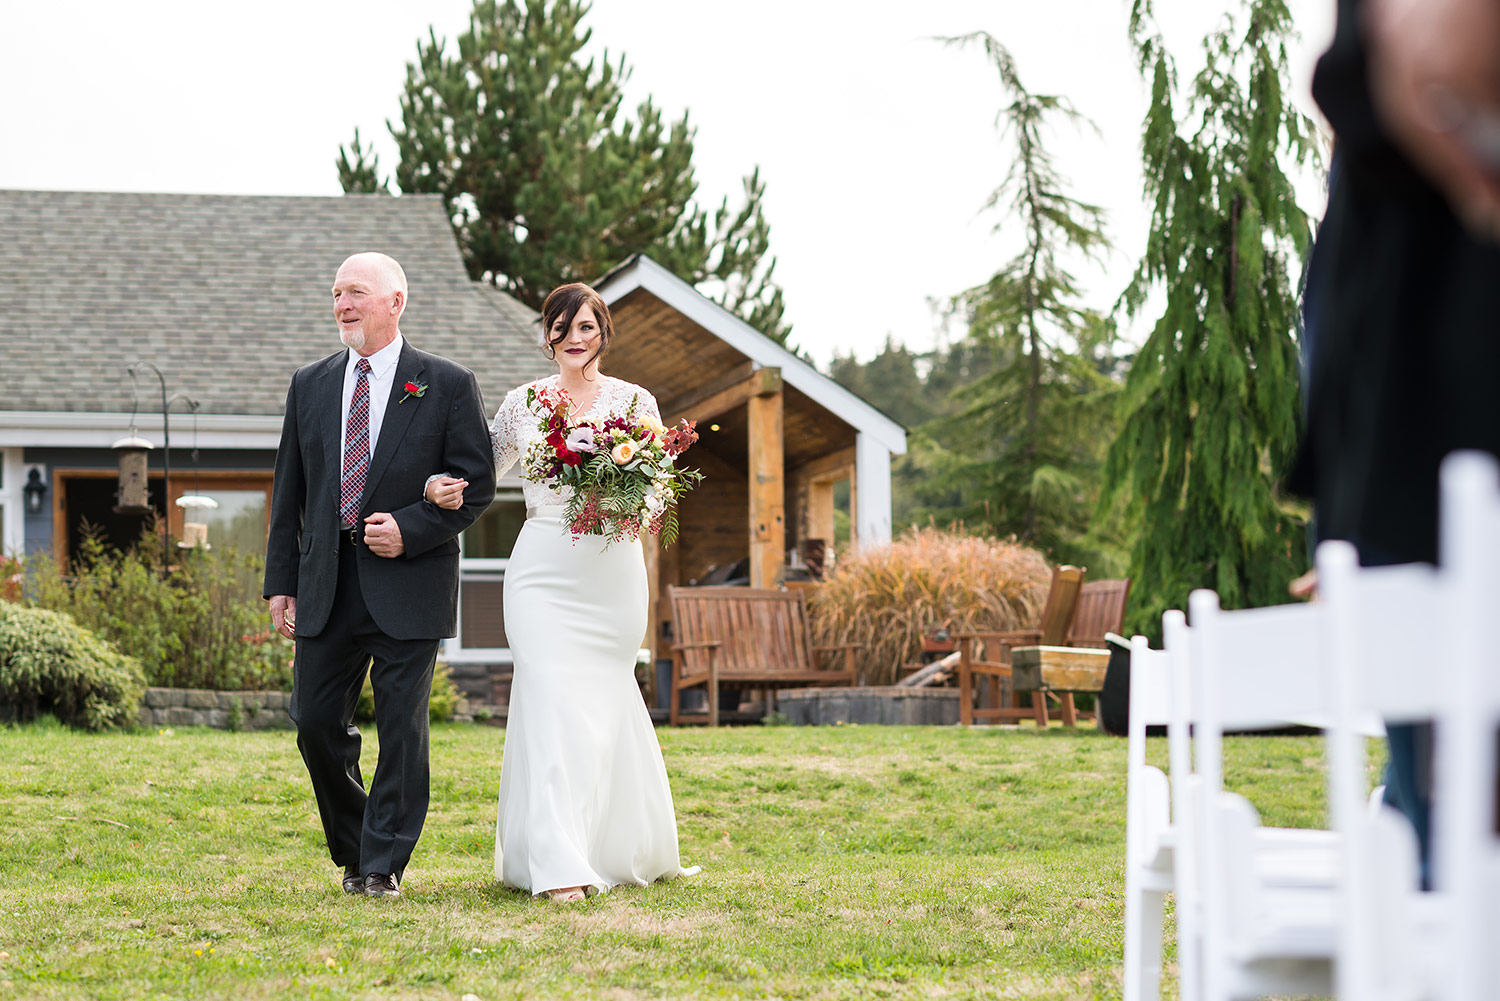 Bride walking down the aisle during a Whidbey Island wedding